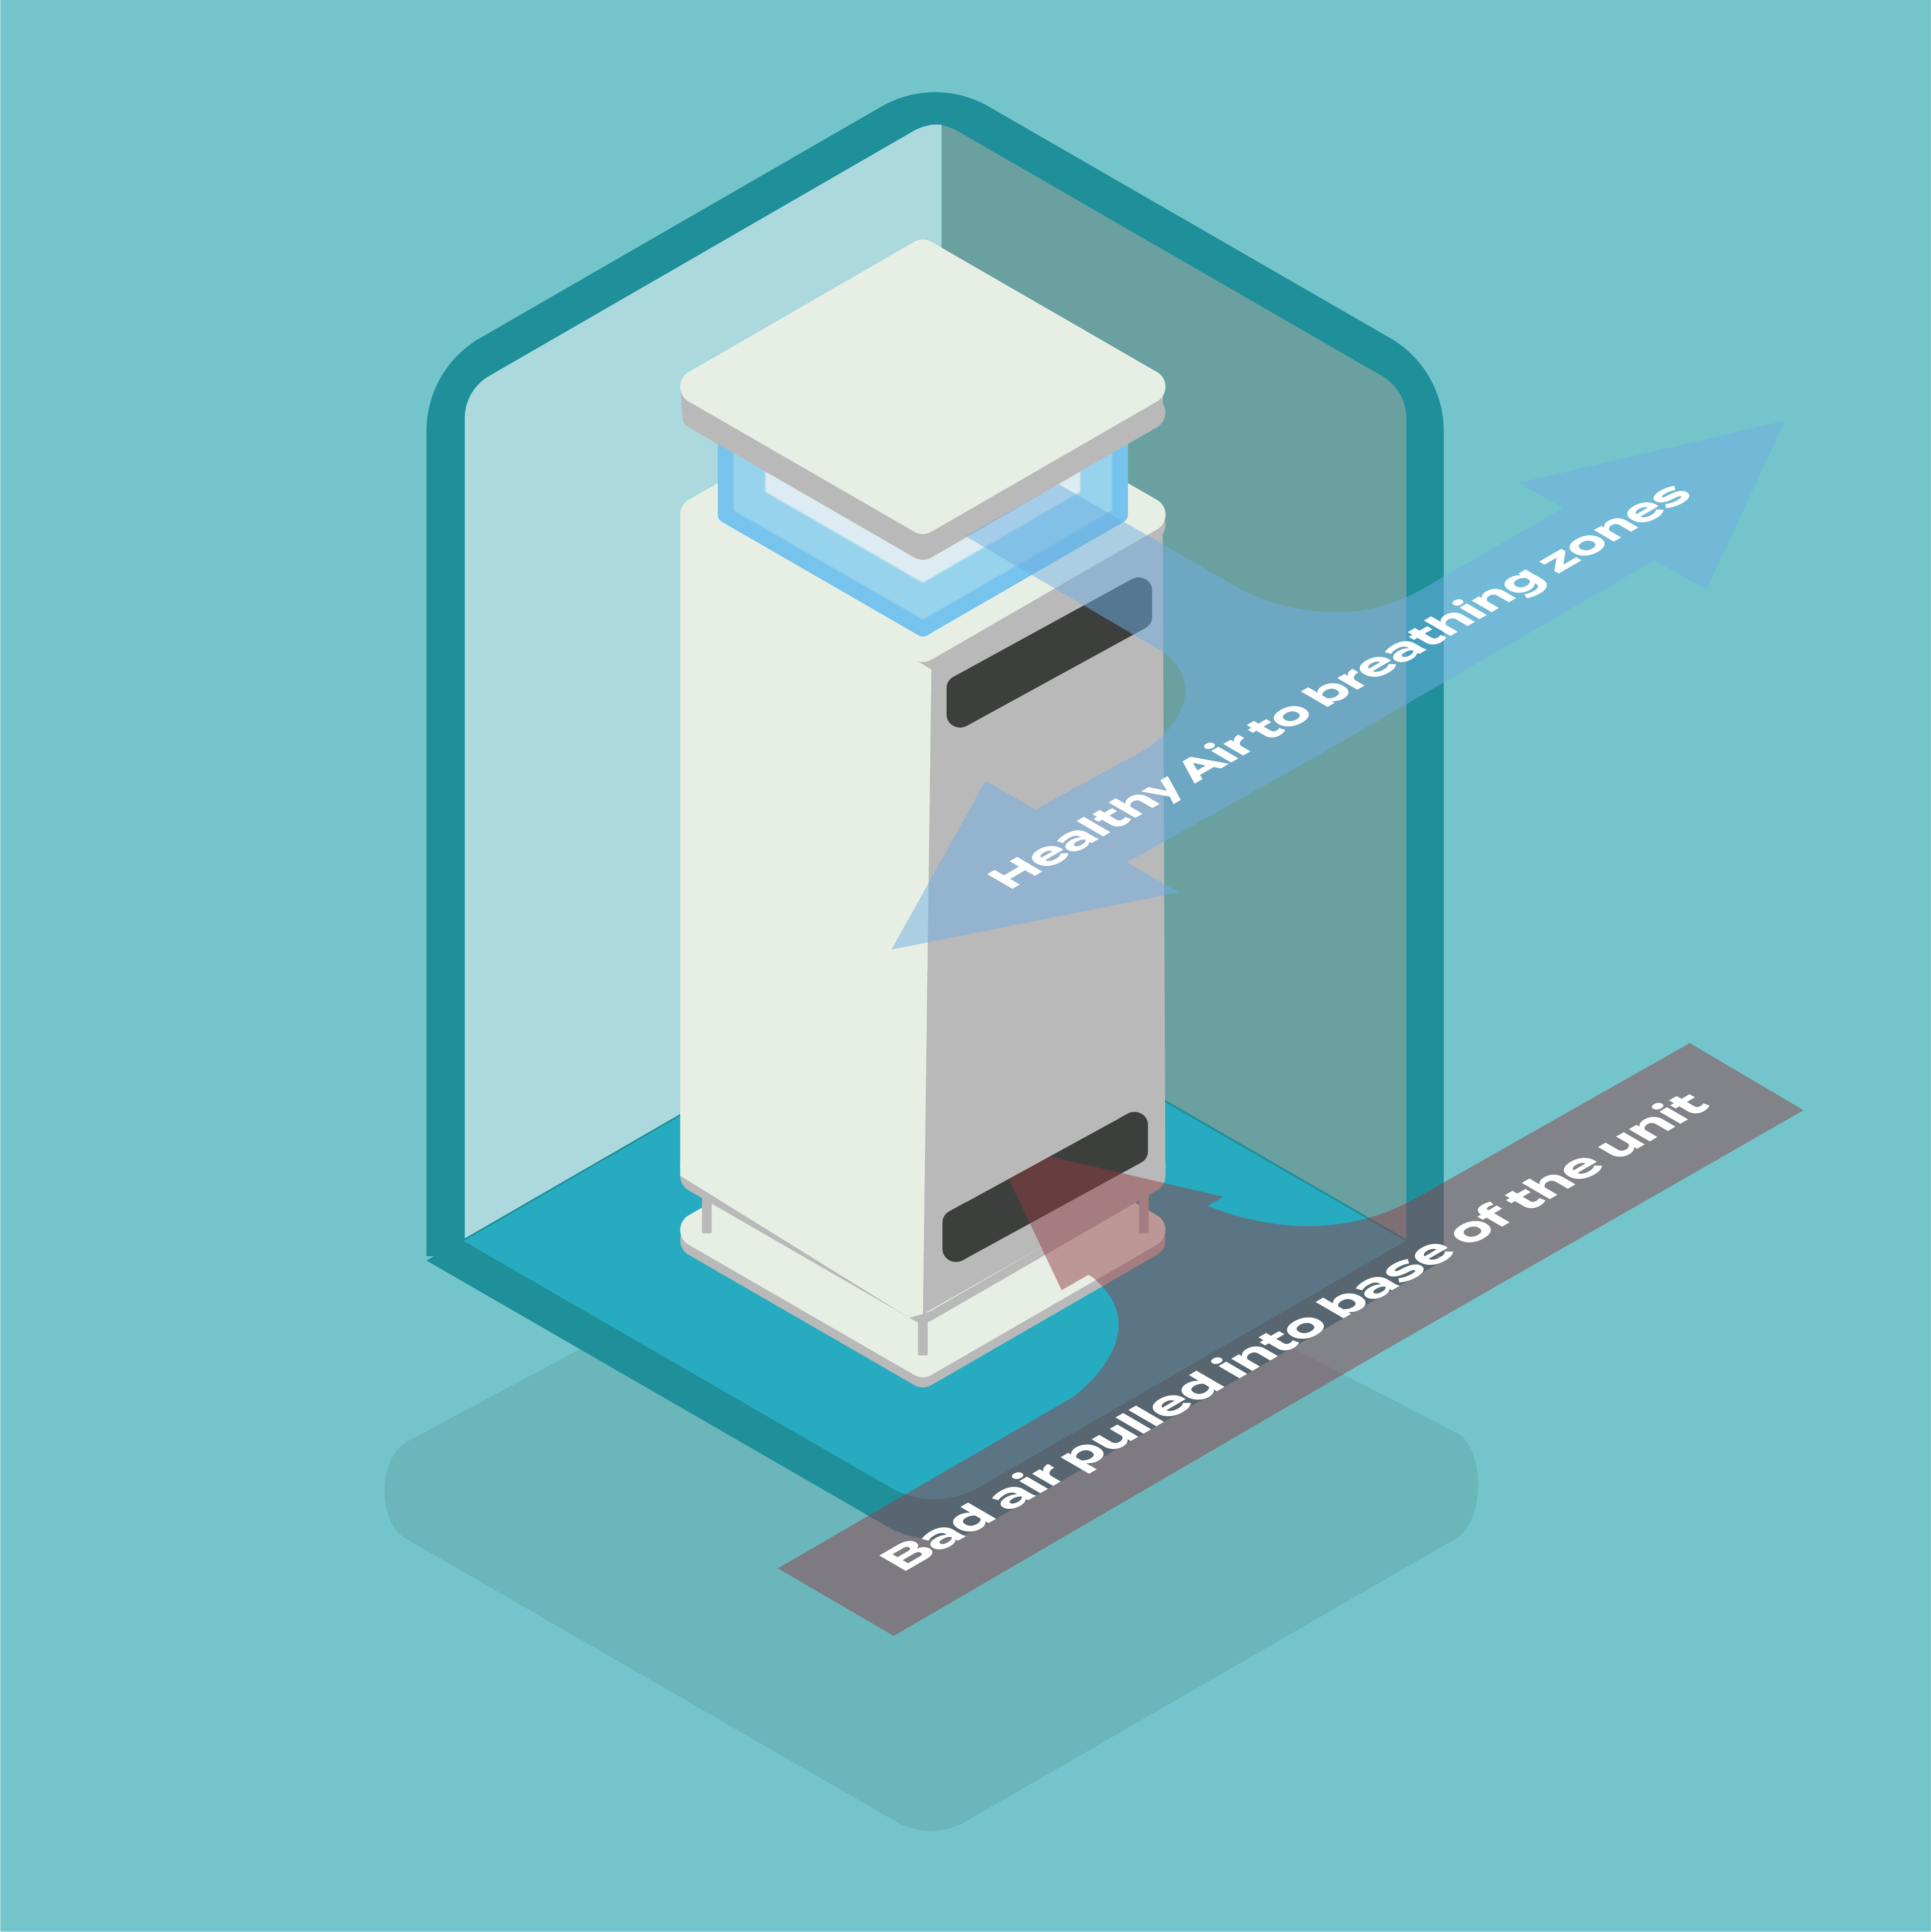 An image of the product and clean air animation